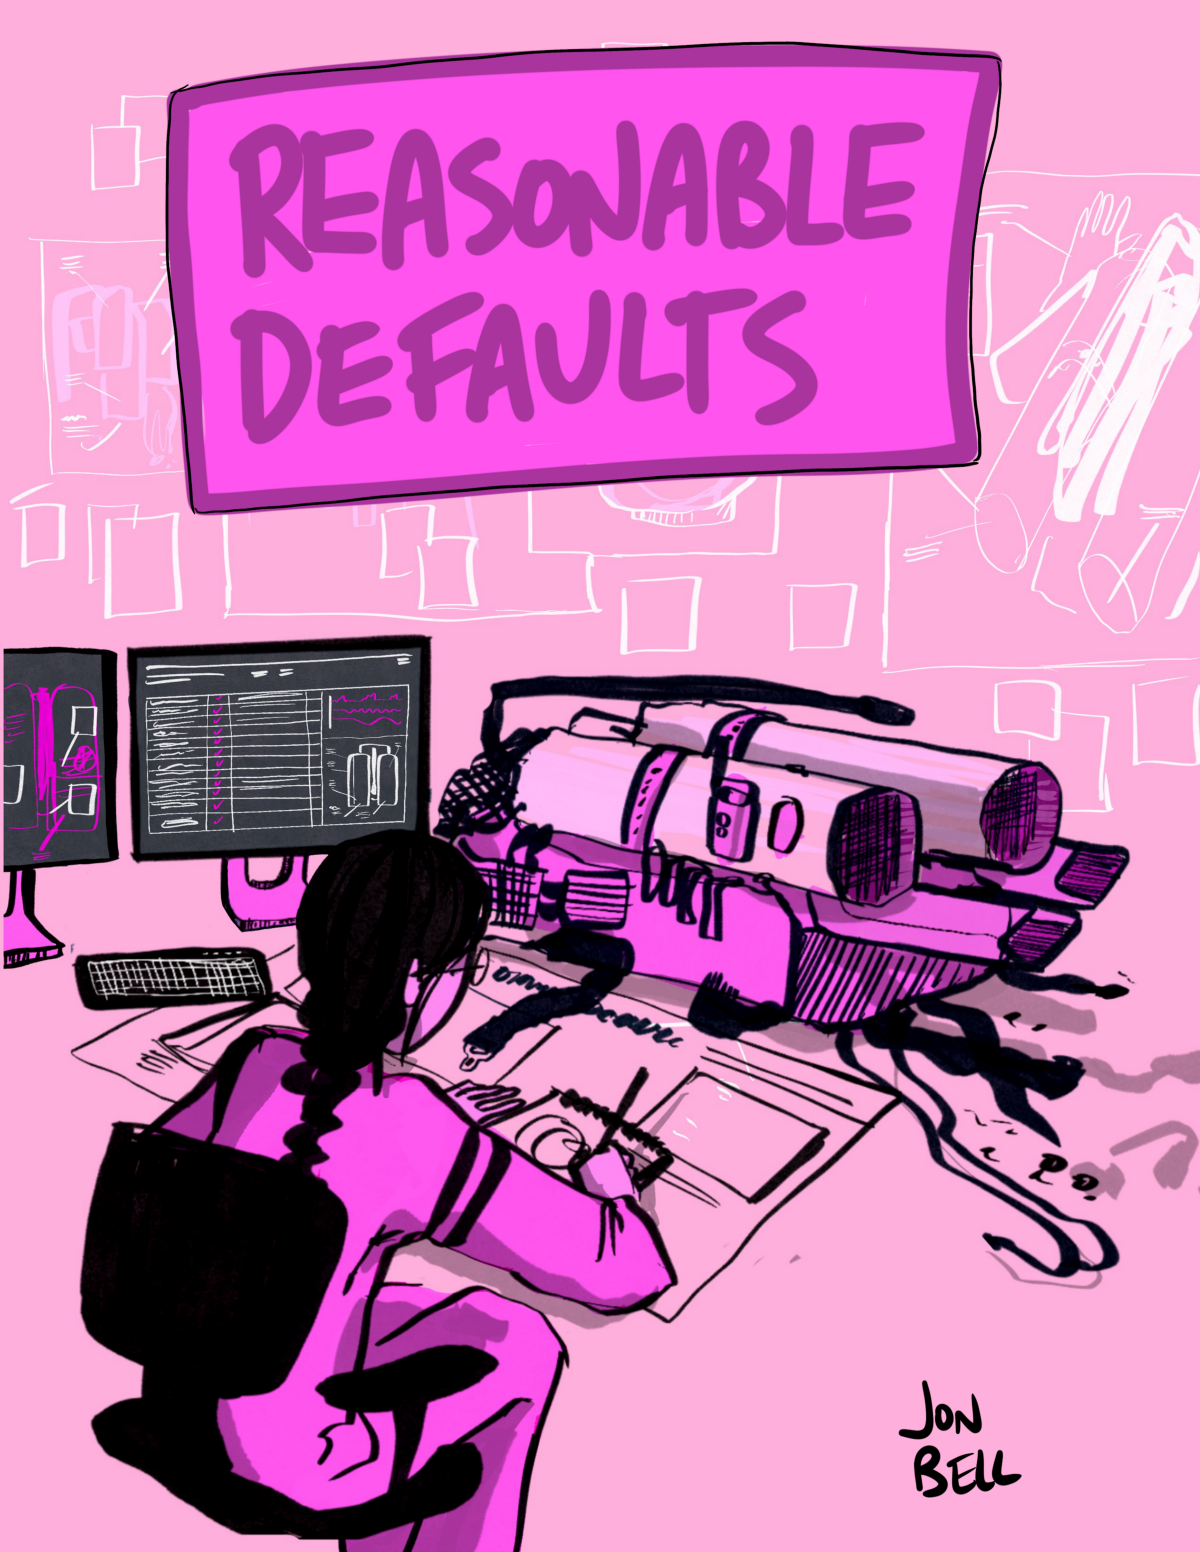 Reasonable Defaults - Jon Bell - Medium